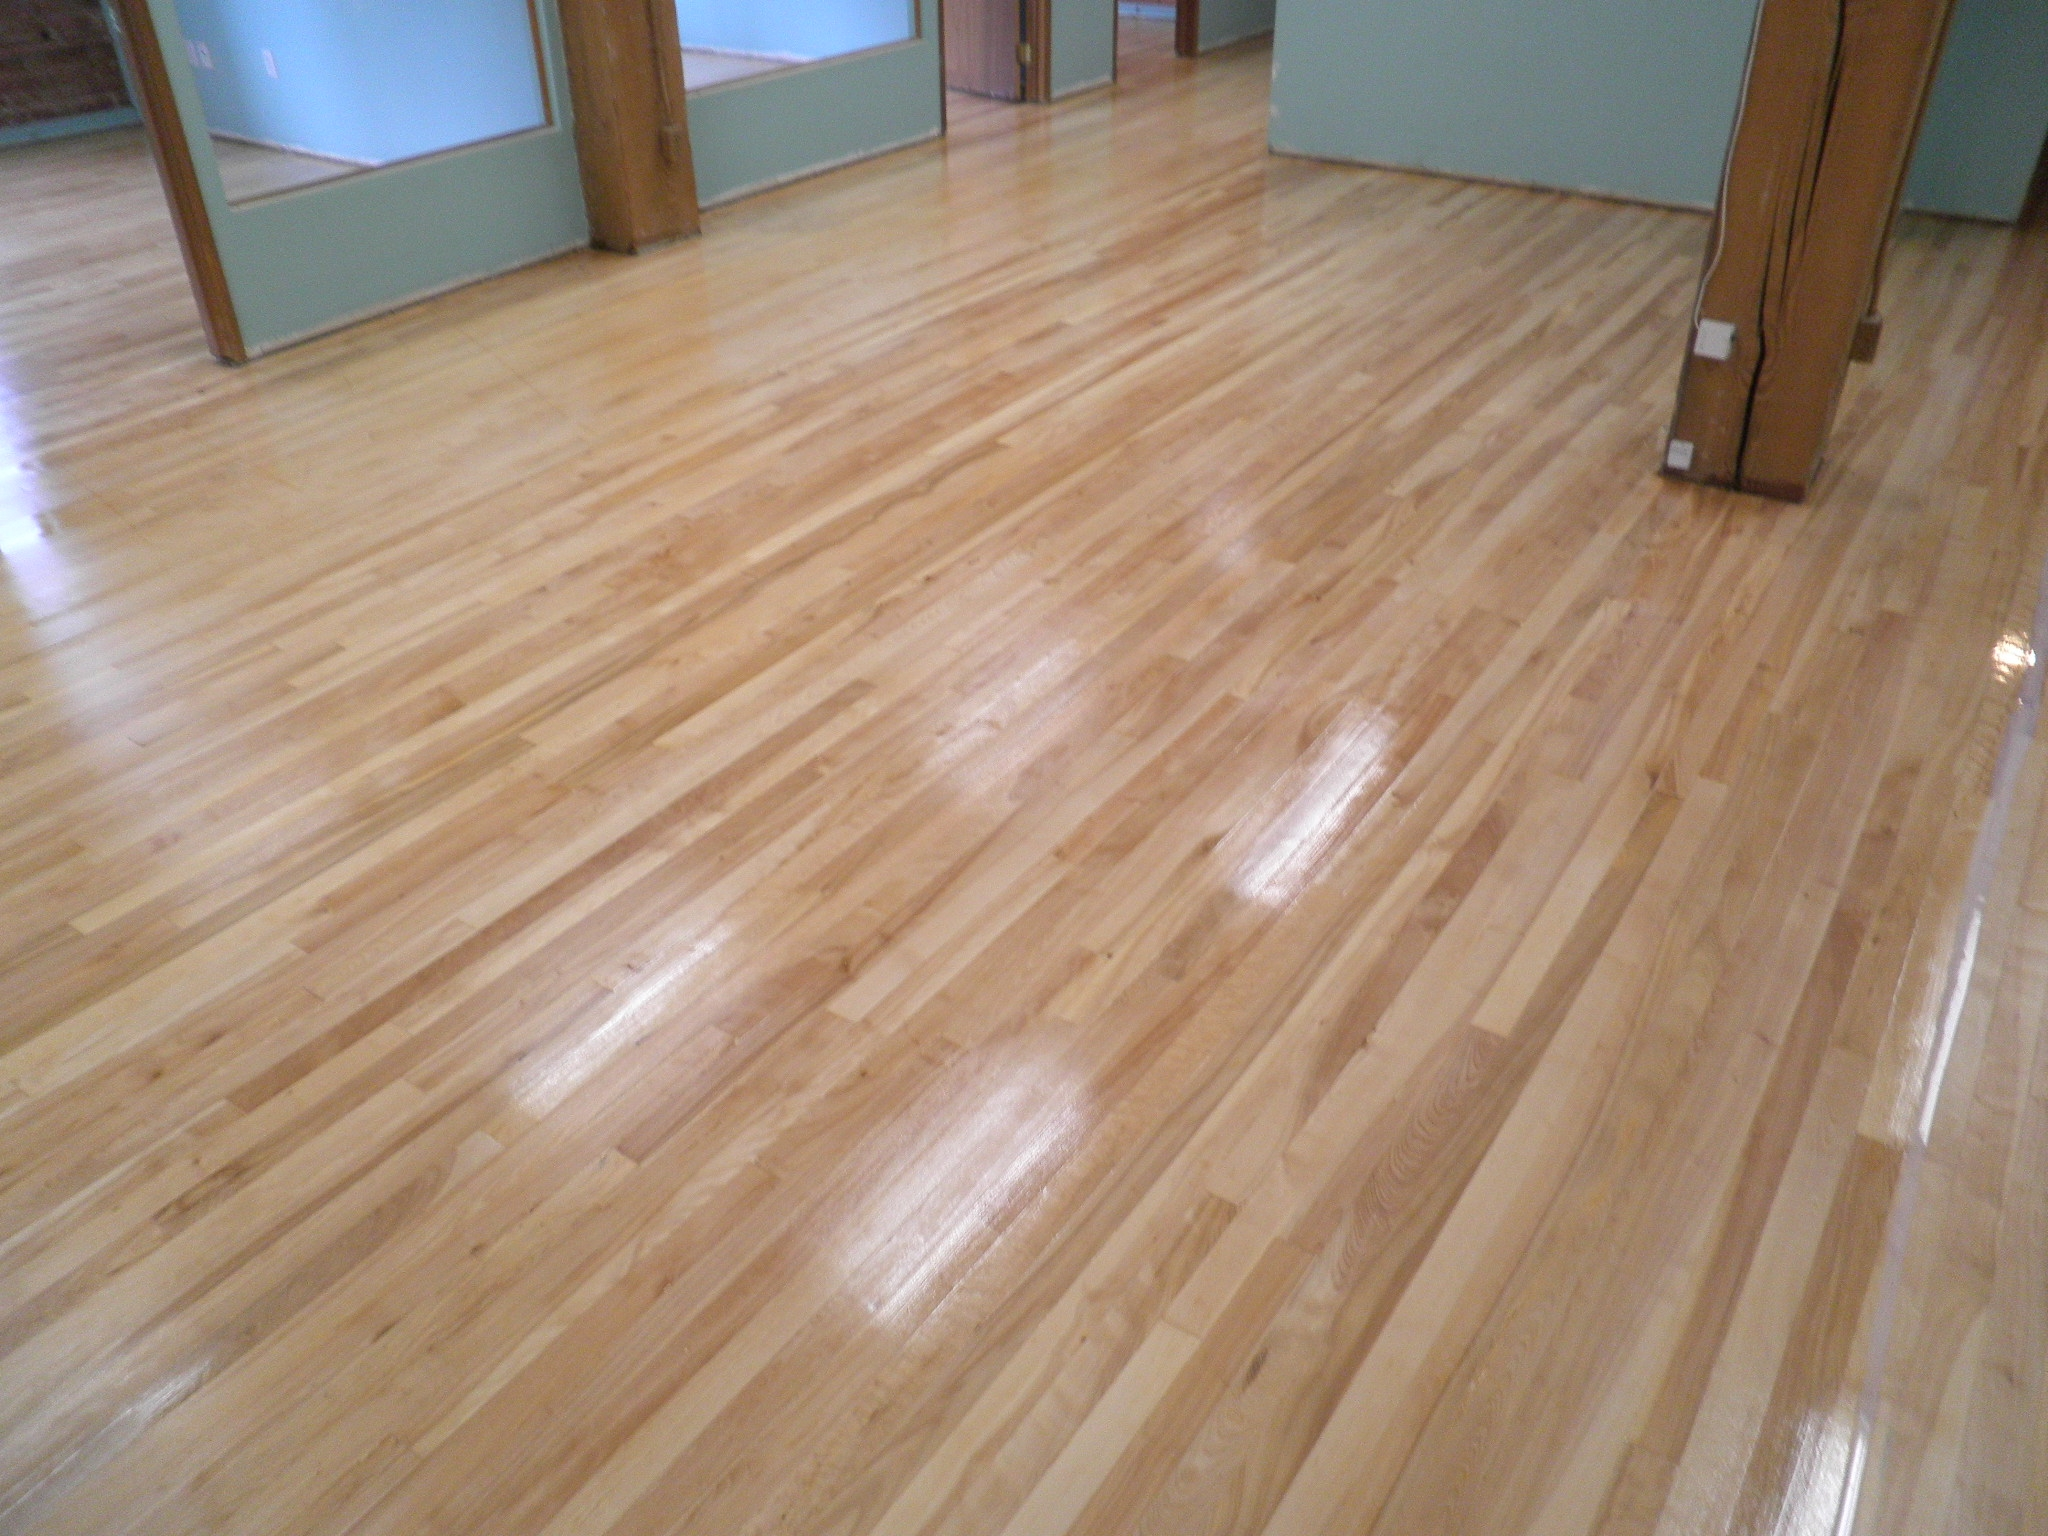 Permalink to Thick Clear Coat For Wood Floors